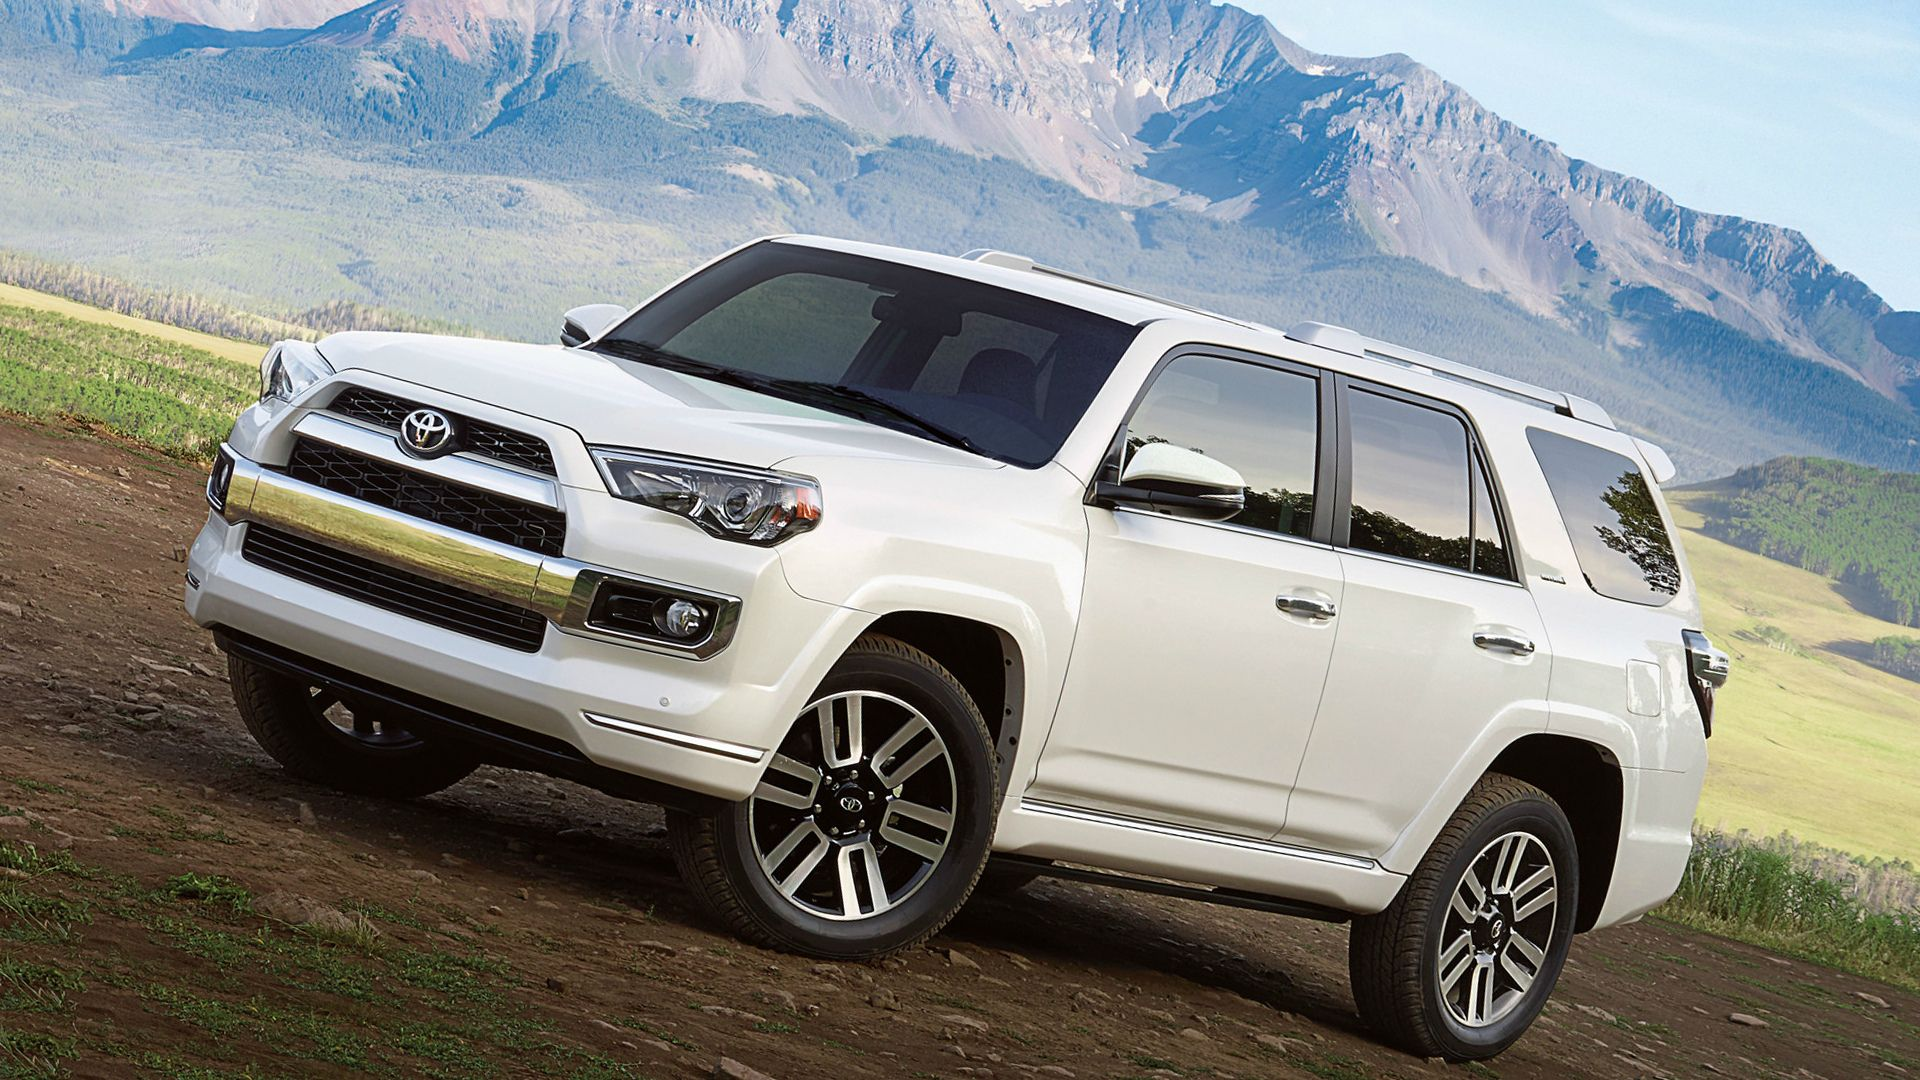 0d22919d47f583c0caccaa99329ad436 Great Description About Used toyota 4runner for Sale